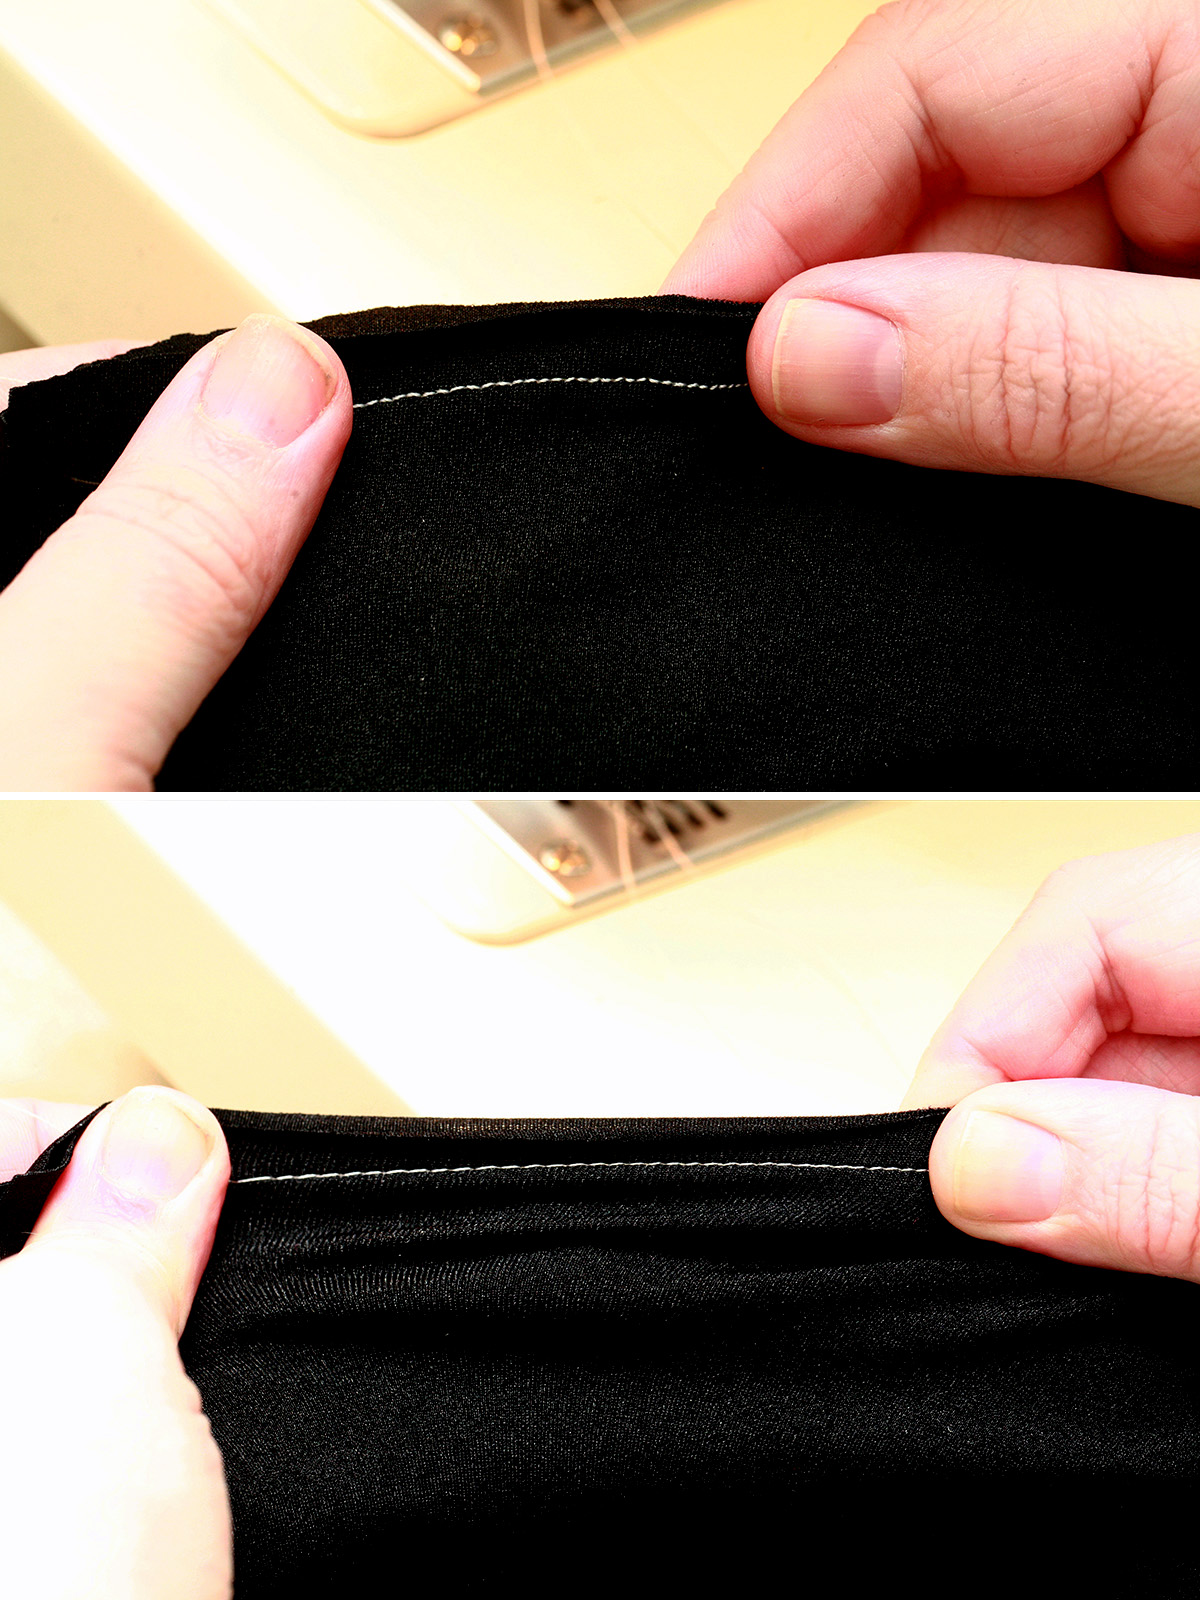 A two part compilation image, showing a pair of hands stretching a seam that's been sewn into a piece of black spandex.